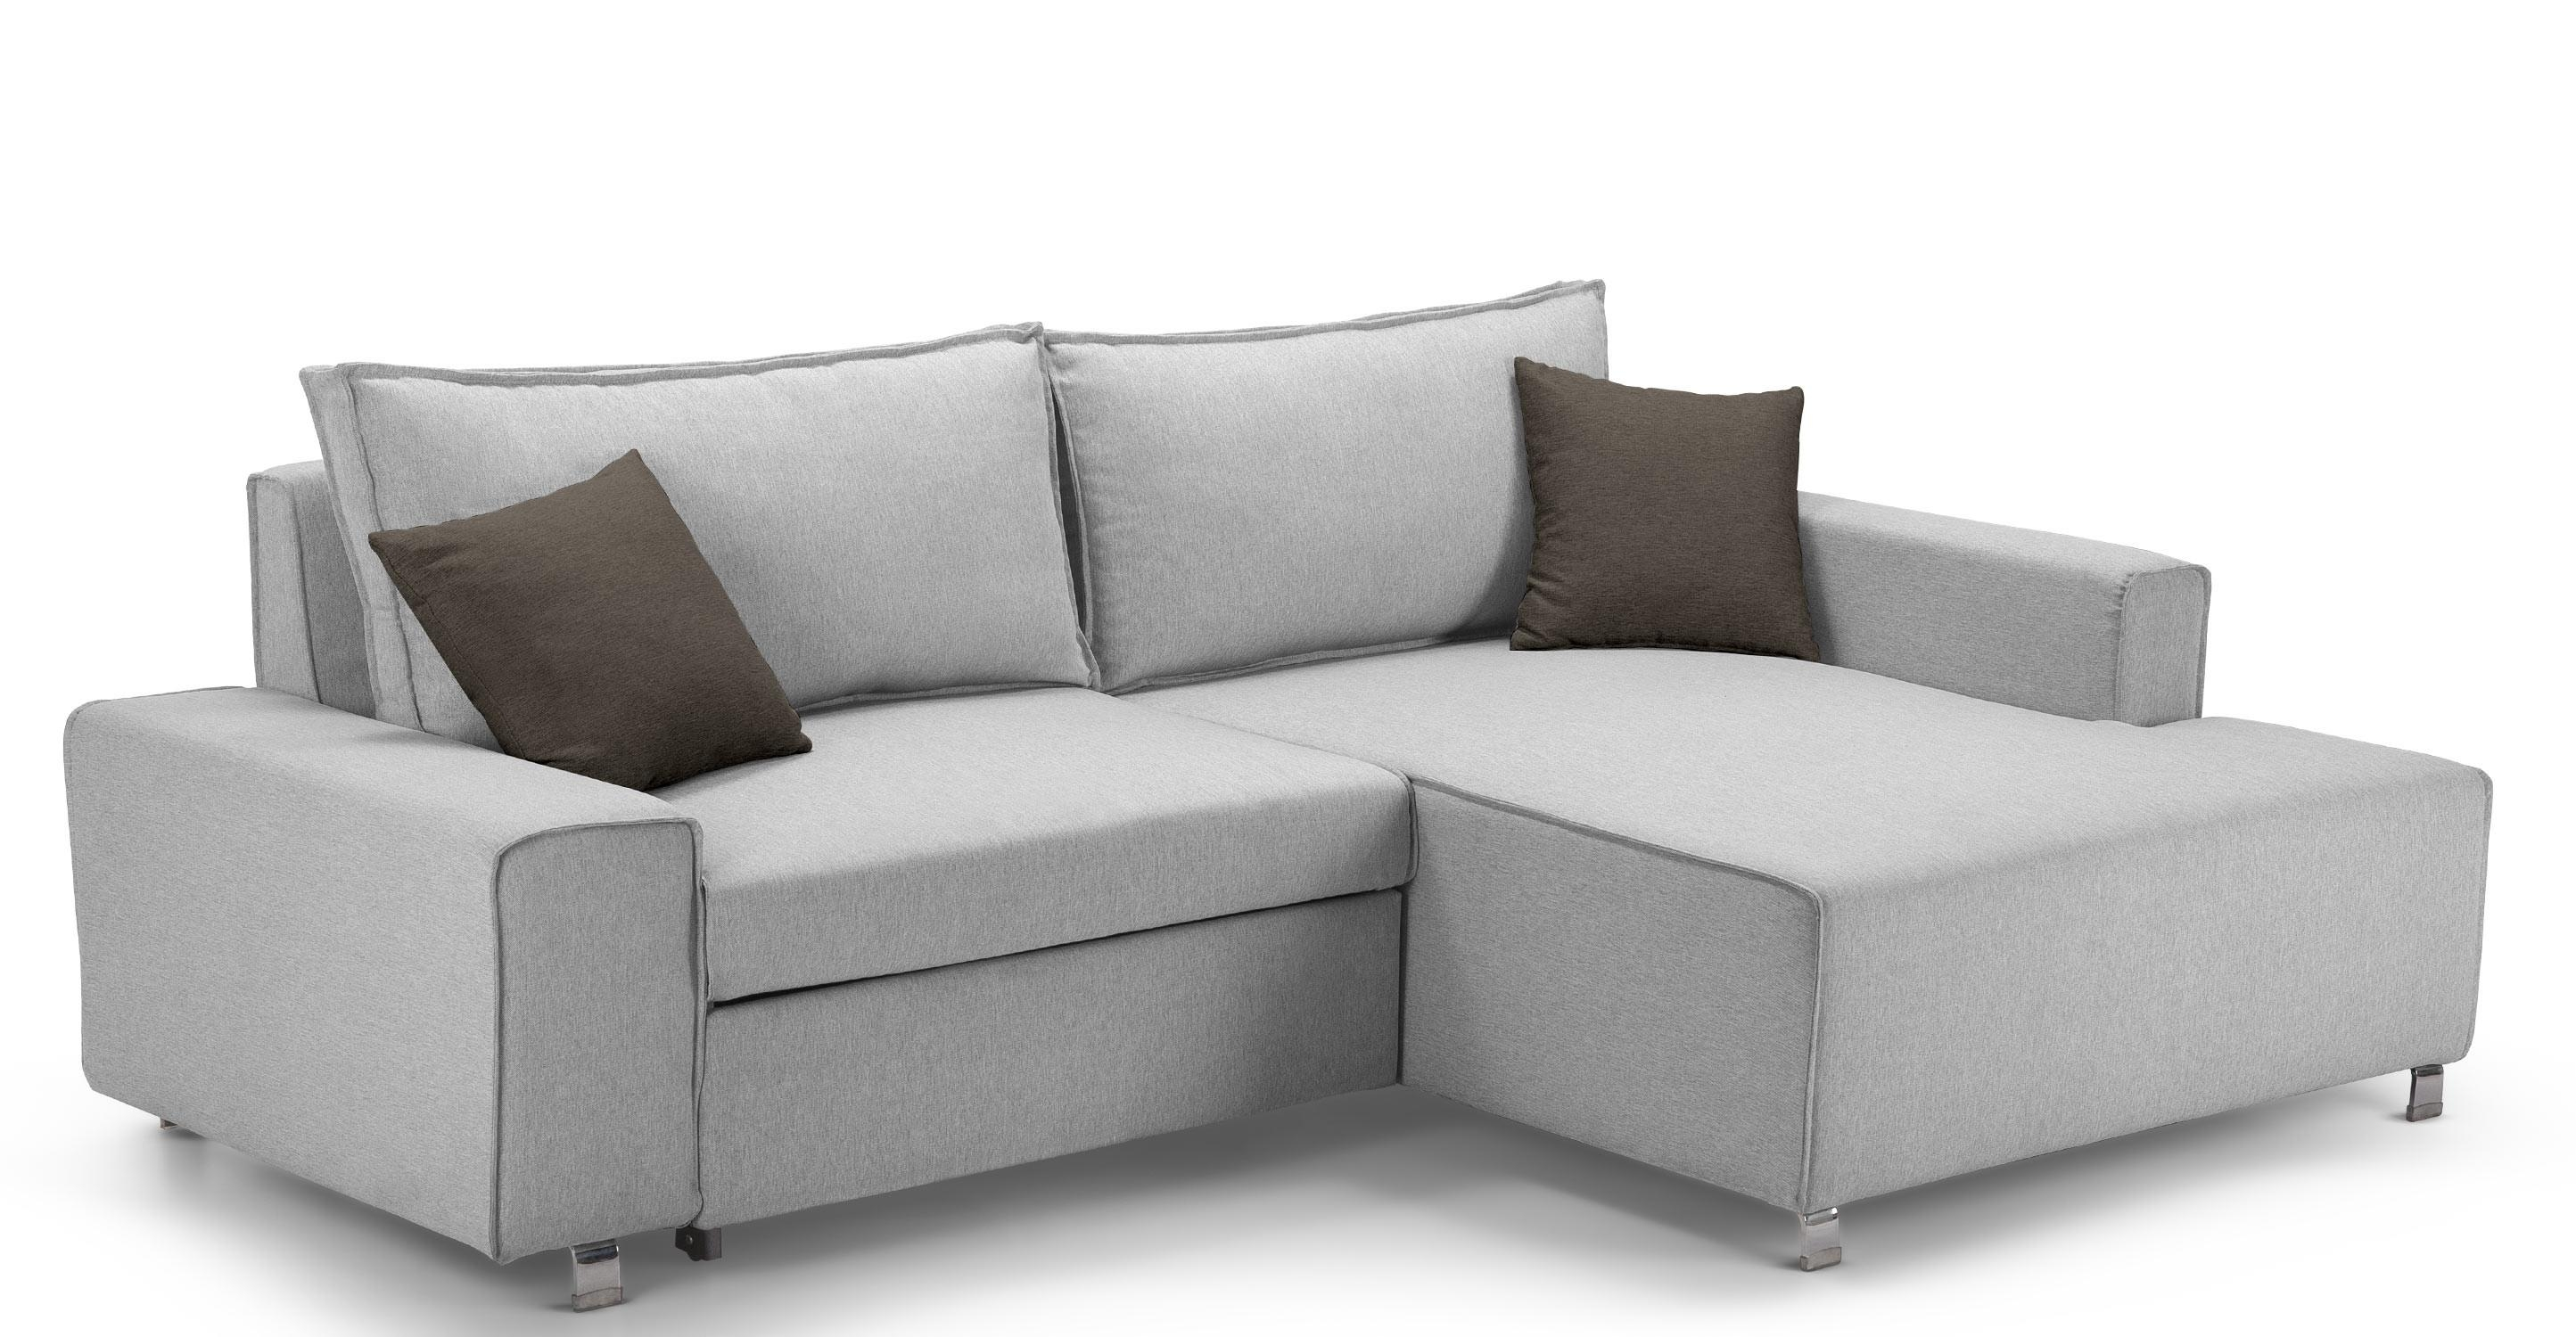 Sofas : Amazing Convertible Sofa Bed Cheap Sofa Beds Sofa Couch Regarding Sofa Corner Units (View 2 of 24)